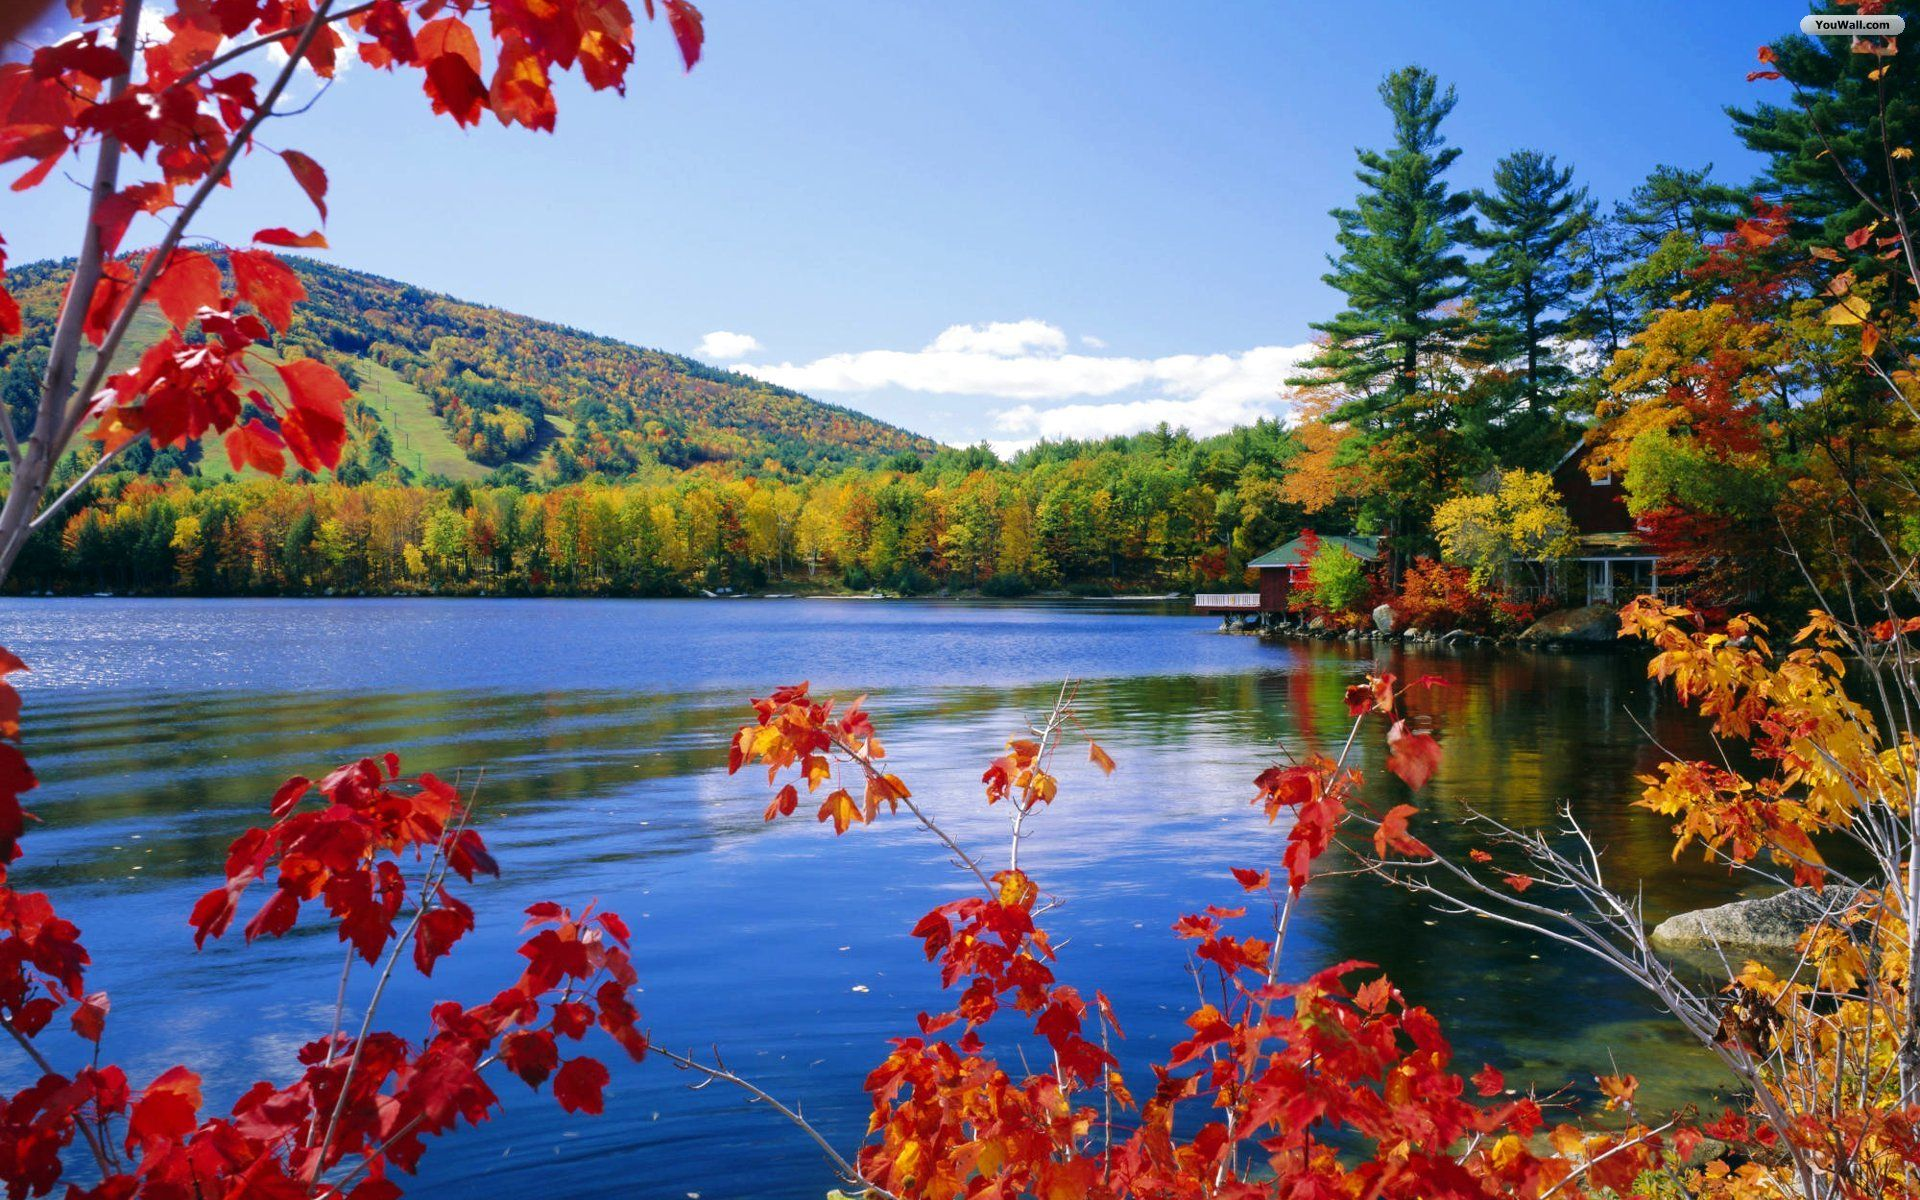 Fall Pictures For Desktop Background Posted By John Walker